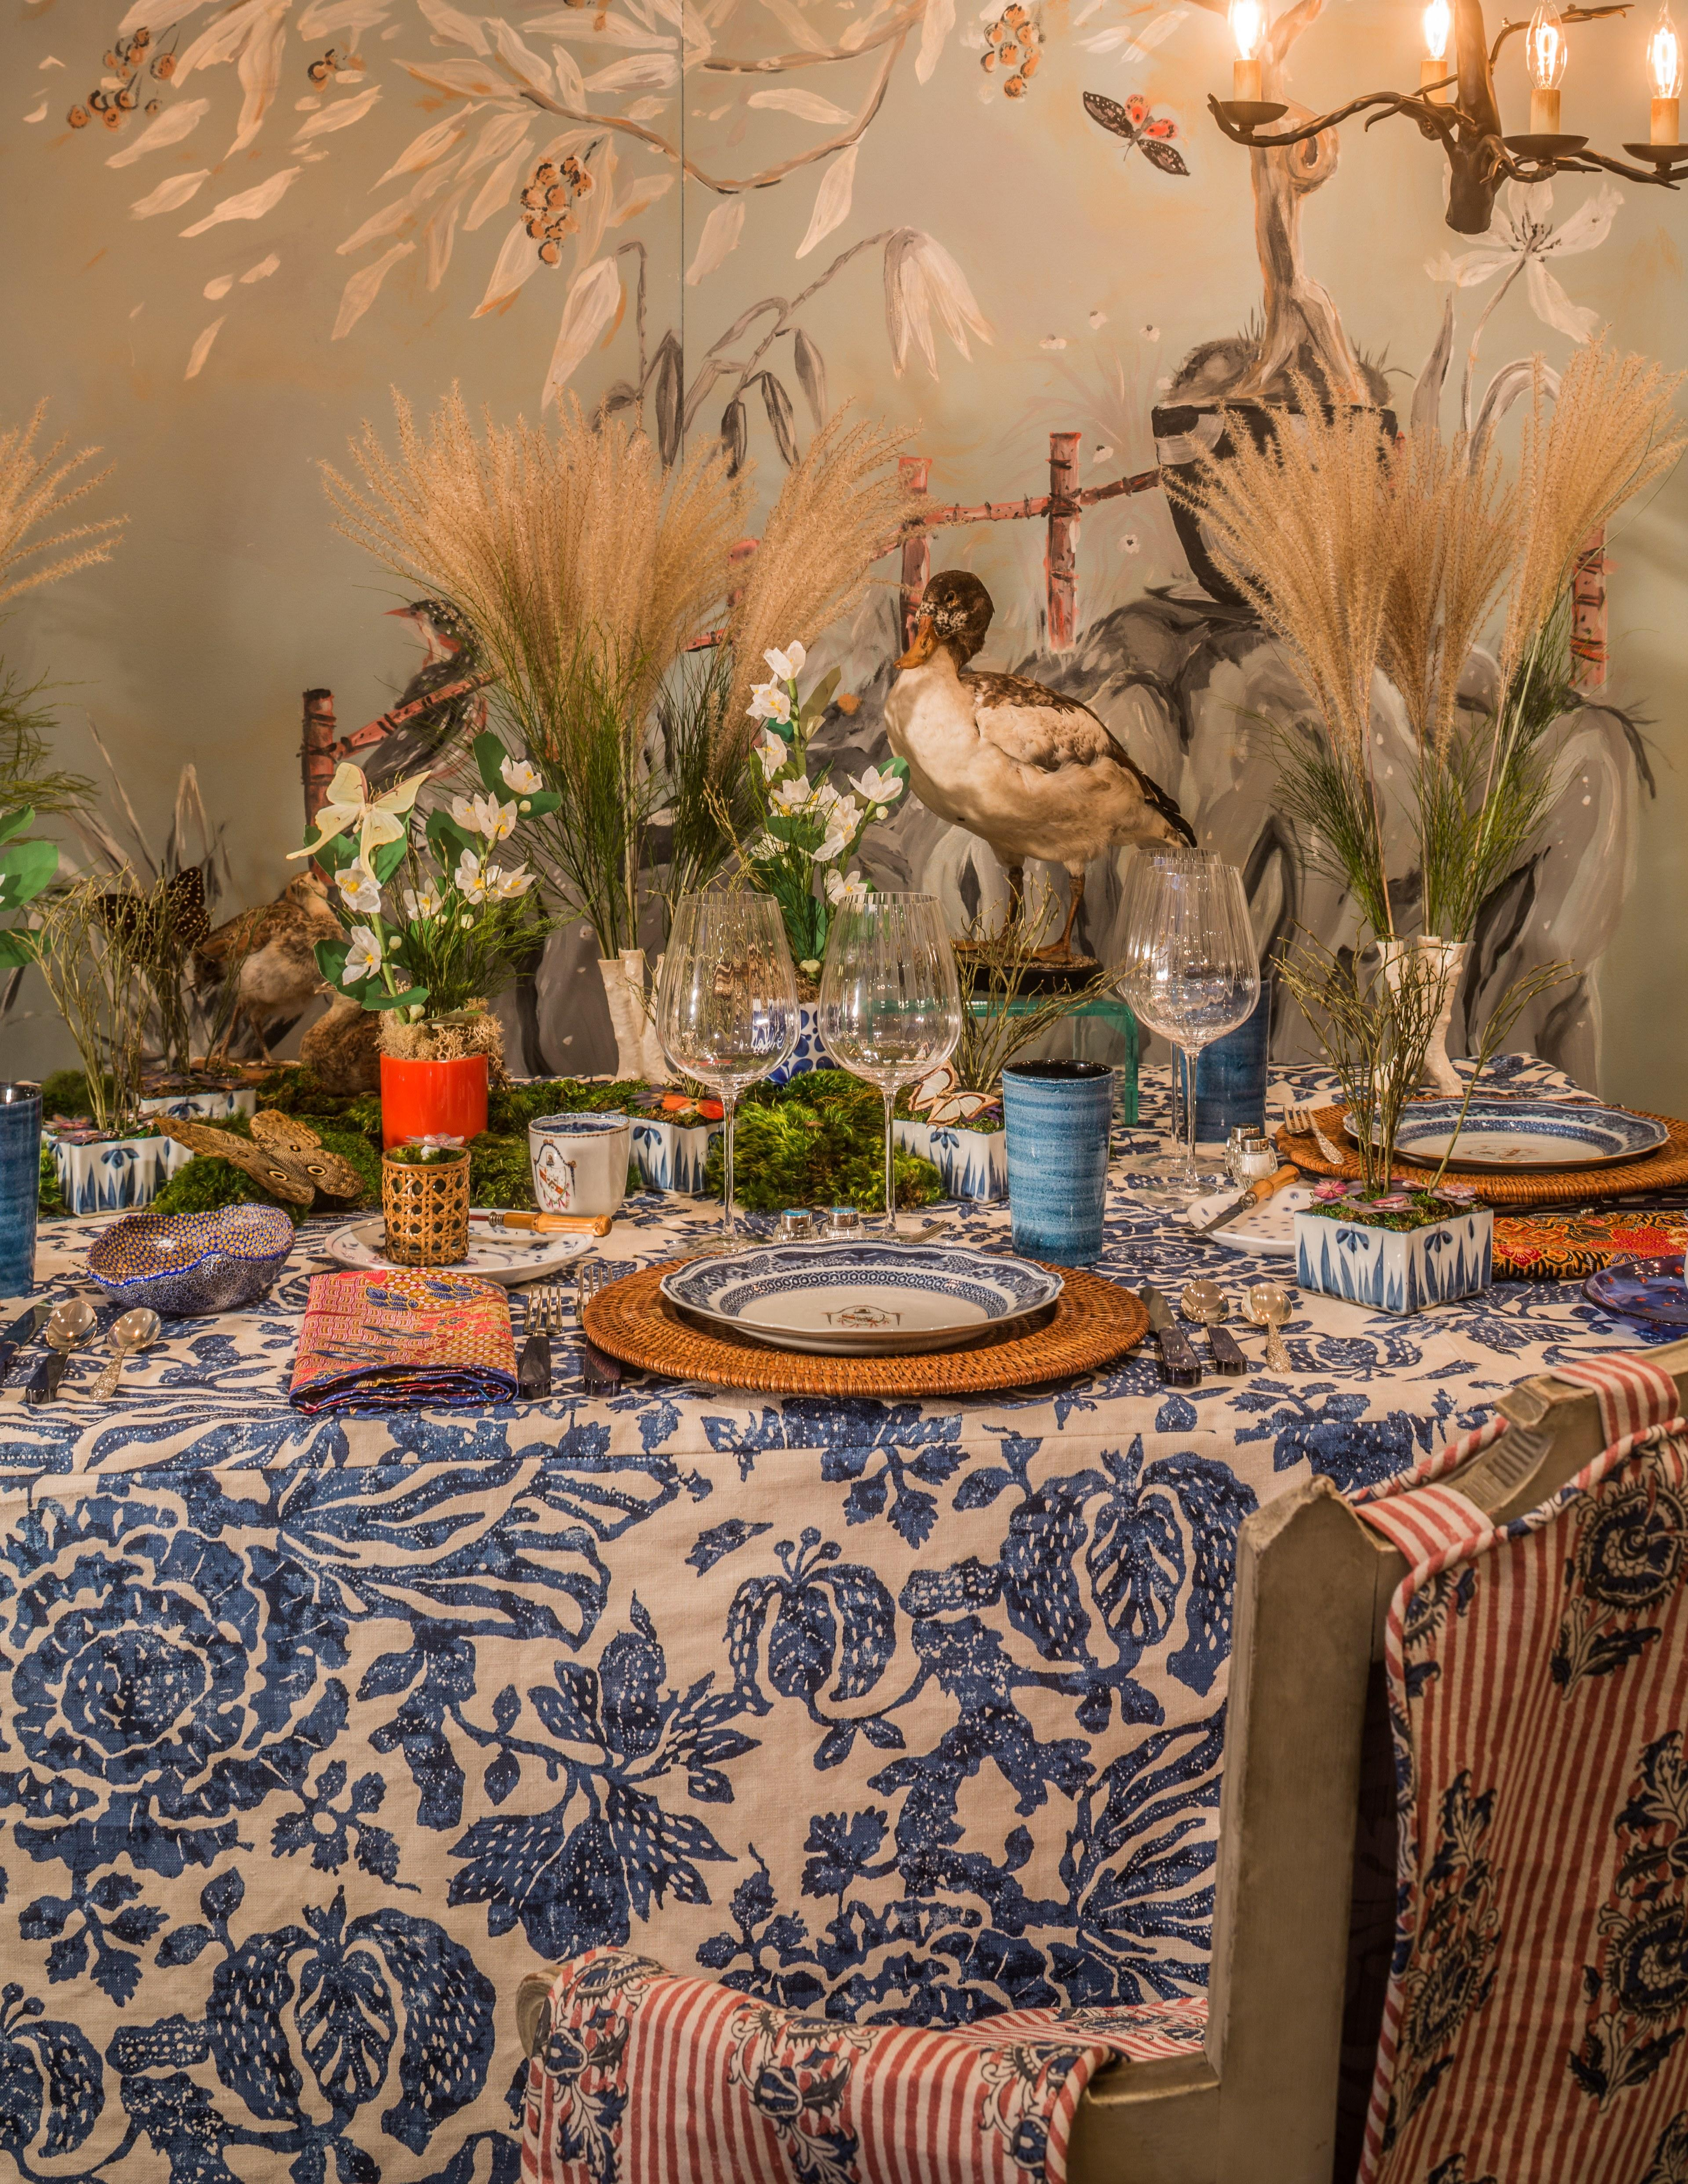 """Madame de Rothschild made a second appearance at the table of designer and author P. Gaye Tapp. Dubbed """"Le Style Pauline,"""" Tapp's tablescape juxtaposes Post's Chinese export porcelain with modern flatware and glasses. North Carolina–based Tapp is well positioned to speculate on the entertaining style of such stylish women; she's the author of <em>How They Decorated: Inspiration from Great Women of the Twentieth Century</em> (<a href=""""https://www.amazon.com/How-They-Decorated-Inspiration-Twentieth/dp/0847847411/ref=sr_1_1/140-7613939-5834508?ie=UTF8&qid=1491754869&sr=8-1&keywords=how%20they%20decorated%20amazon"""" rel=""""nofollow noopener"""" target=""""_blank"""" data-ylk=""""slk:Rizzoli,"""" class=""""link rapid-noclick-resp"""">Rizzoli,</a> $55). """"It's only natural that I turn to her legendary Grand Mouton tablescapes for The Artistic Table inspiration,"""" Tapp explains. """"Pauline de Rothschild needed look no further than the exquisitely framed eighteenth-century Chinese painted panels in her Mouton bedroom. Those panels might come to life on her table landscapes — petite orchards of wild cherry, or a small forest of branches in cache-pot. My table also takes its cues from those panels and the taxidermy birds de Rothschild had in her bedroom."""" Tapp enlisted decorative painter Jimmie Henslee to interpret de Rothschild's panels as a mural behind her table."""